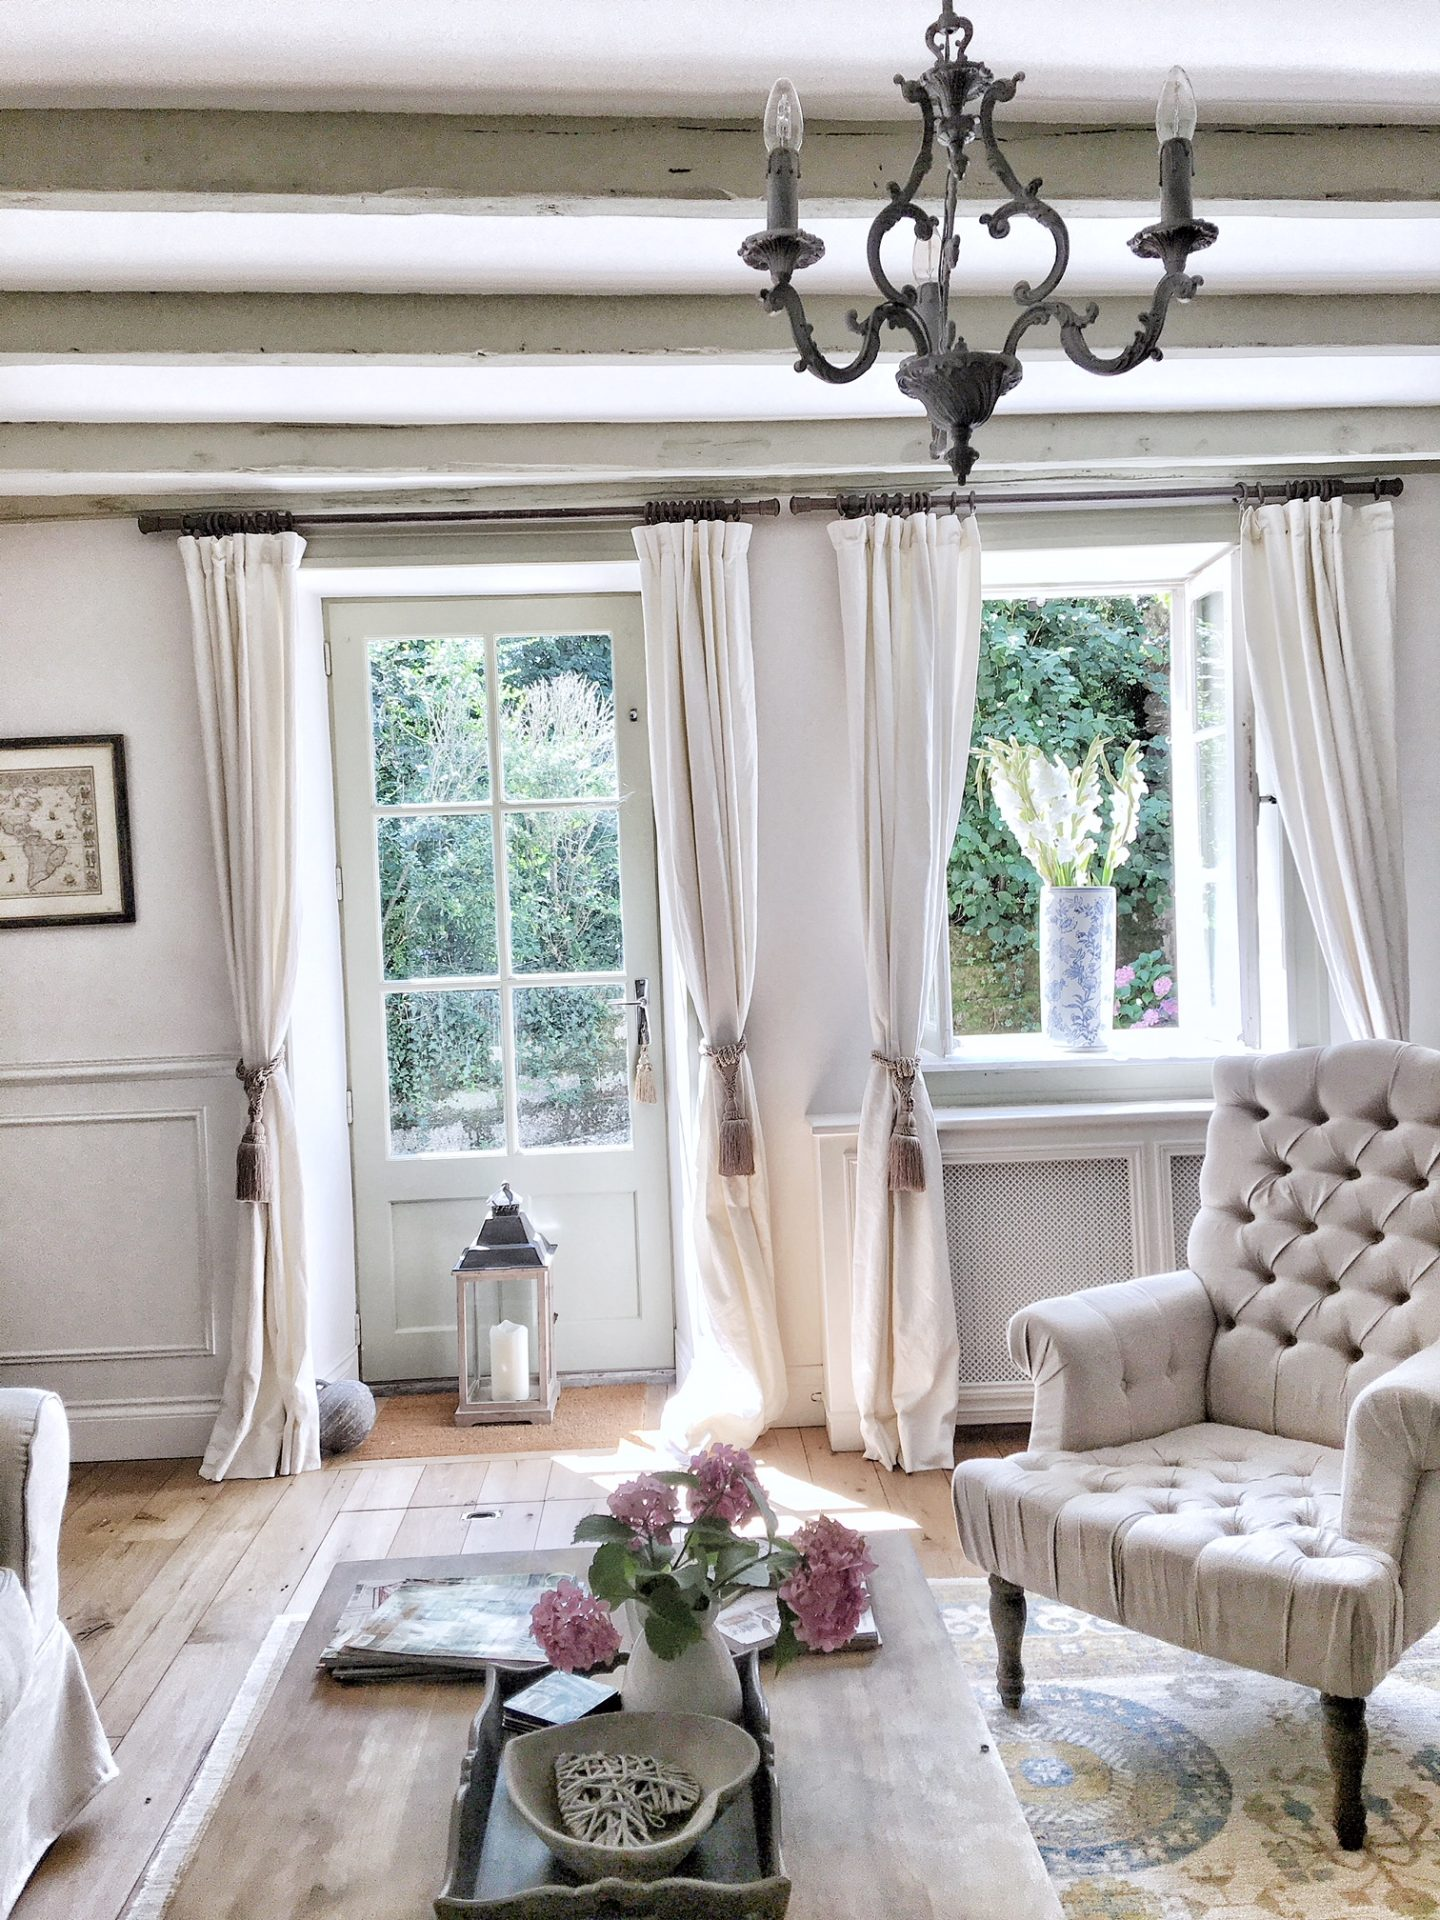 White living room in a French farmhouse near Bordeaux by Charlotte Reiss of Vivi et Margot.